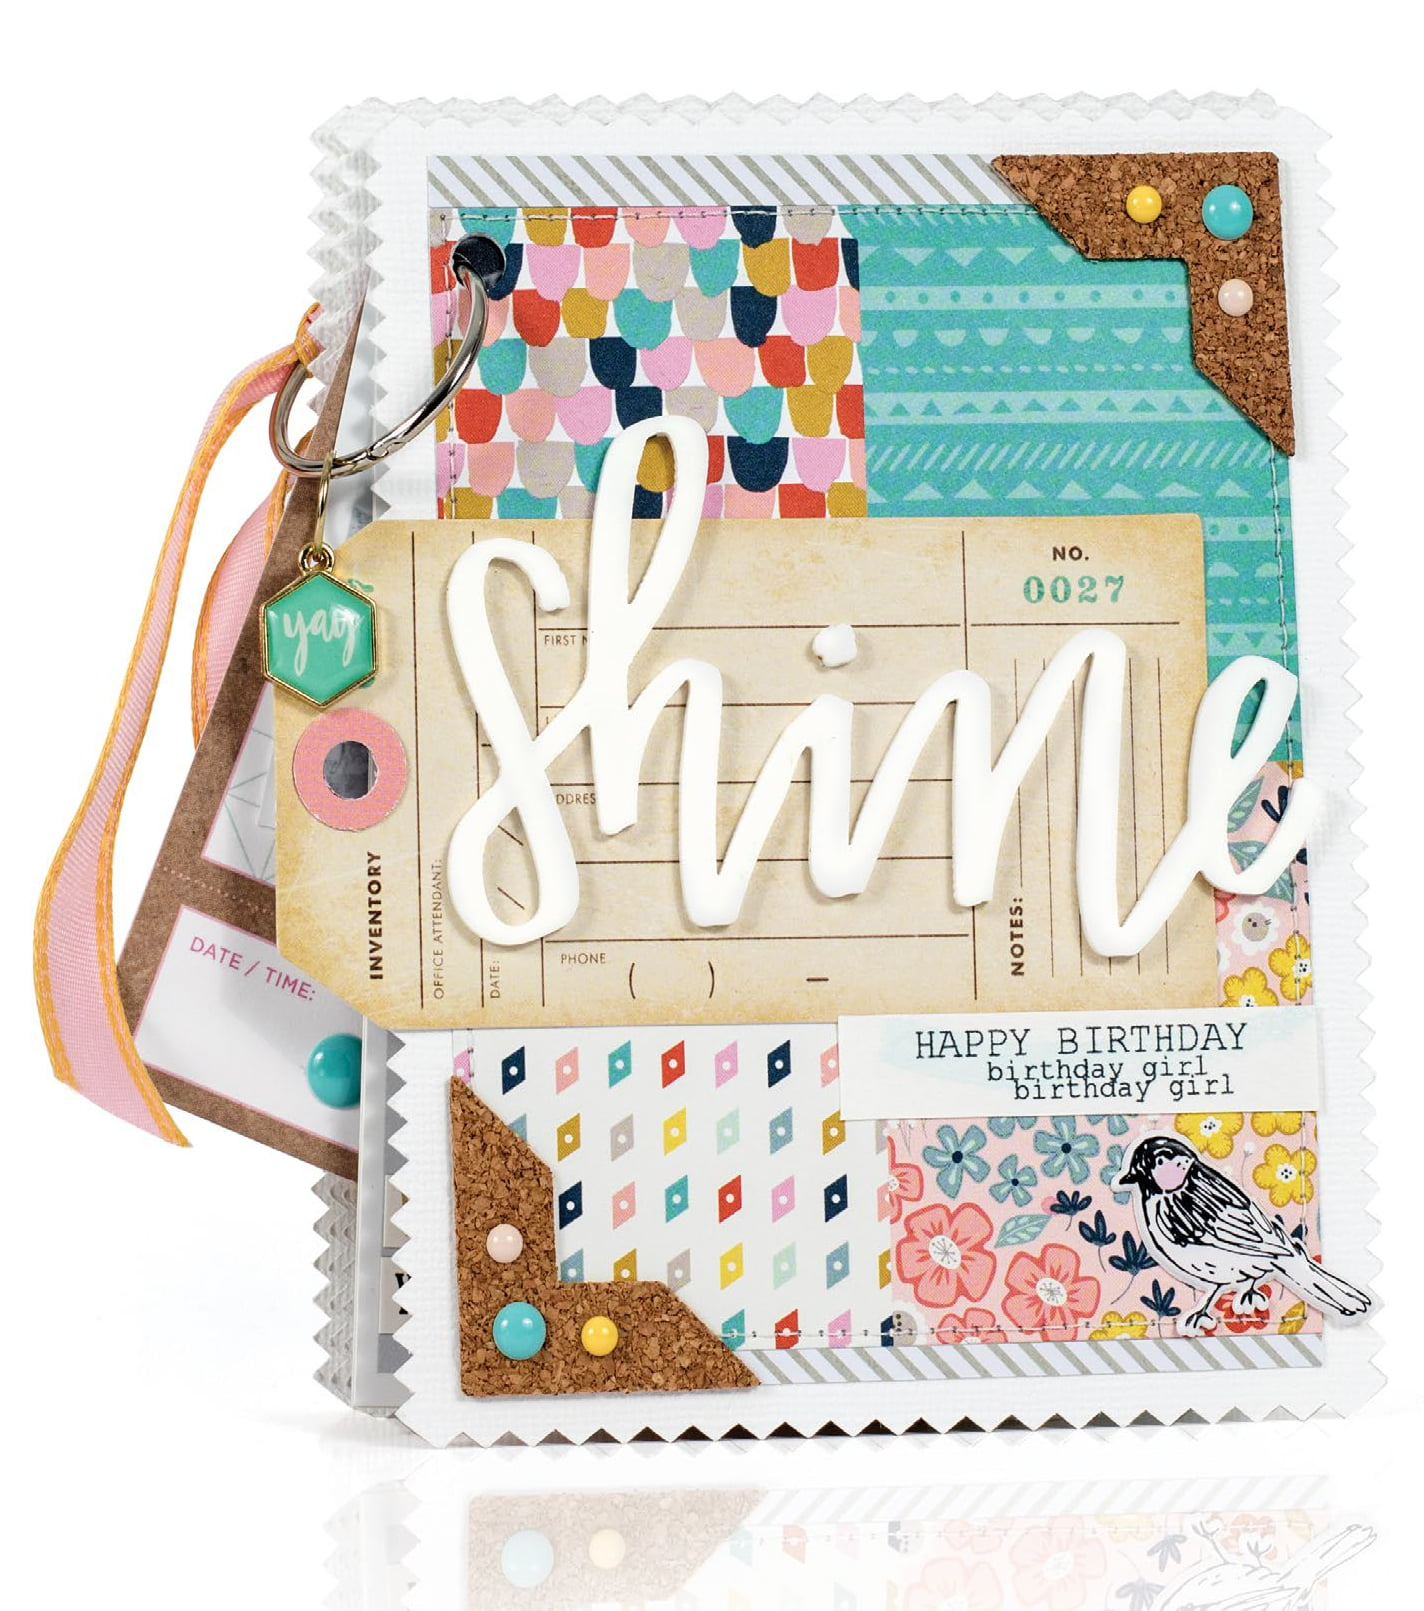 Shine mini album by Sheri Reguly - Scrapbook & Cards Today Spring 2018